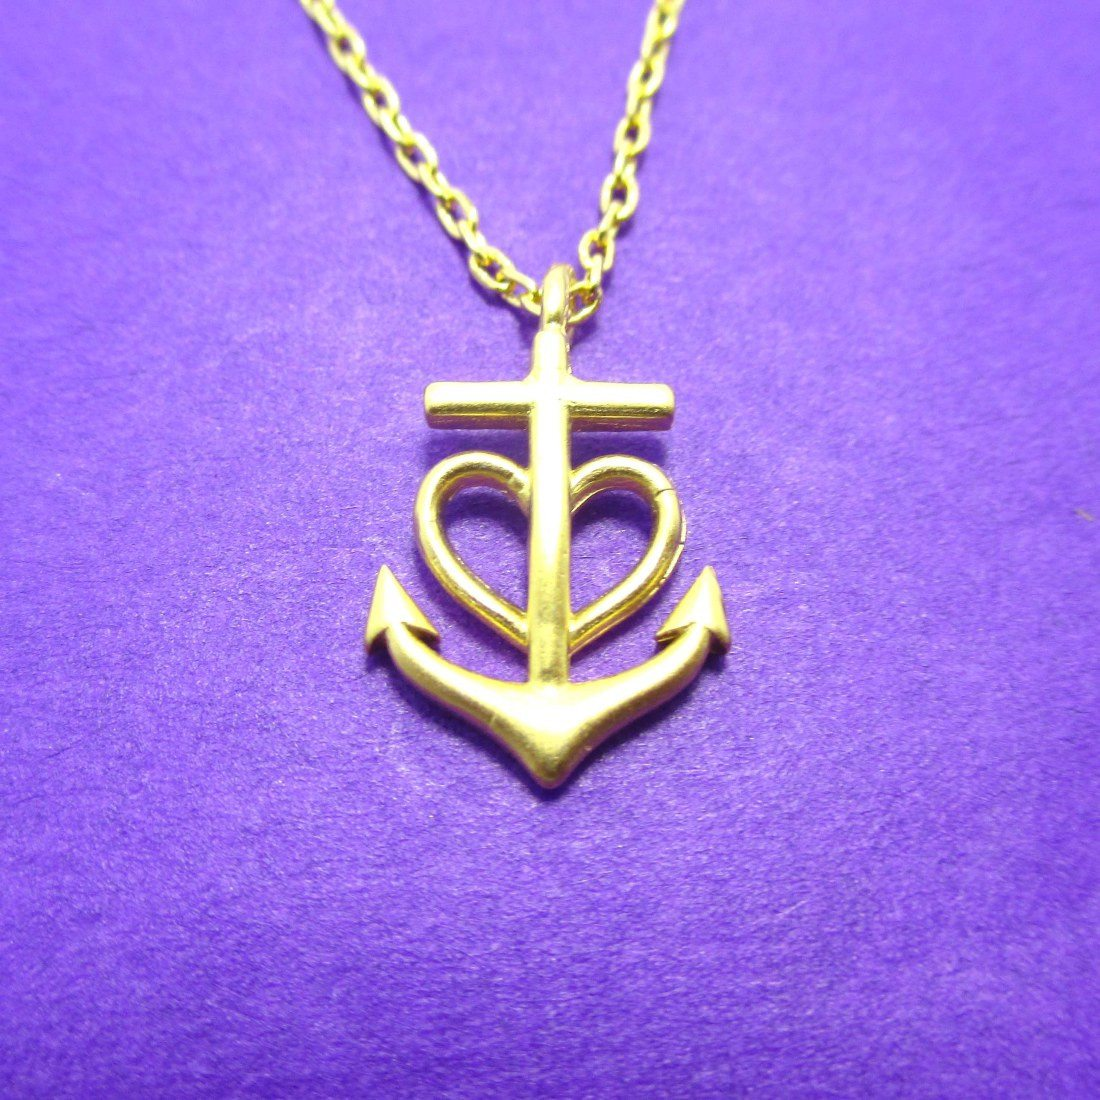 Heart Shaped Anchor Nautical Themed Necklace in Gold